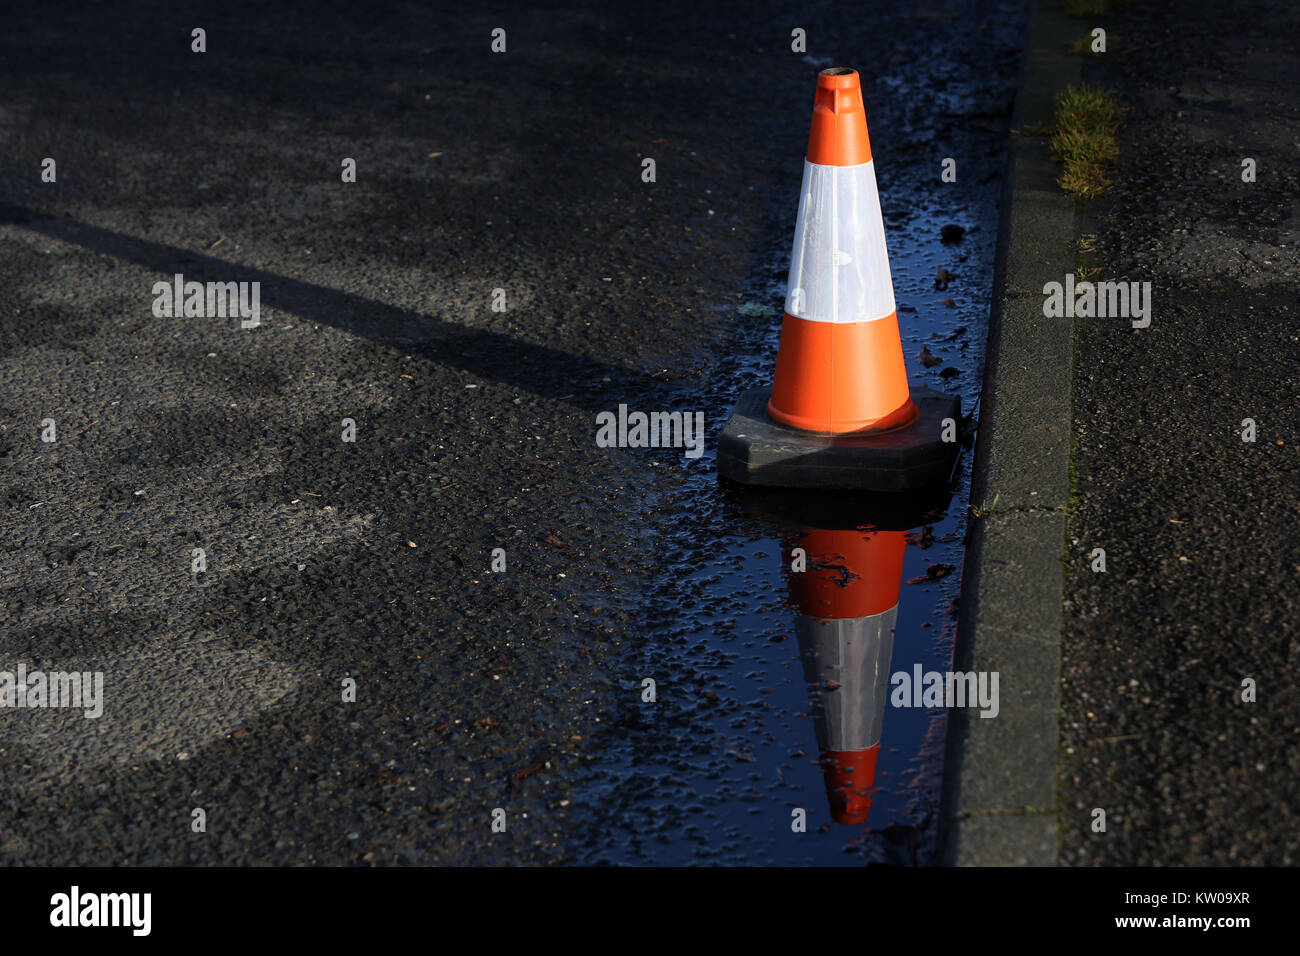 A single traffic cone pictured with reflection in West Sussex, UK. - Stock Image